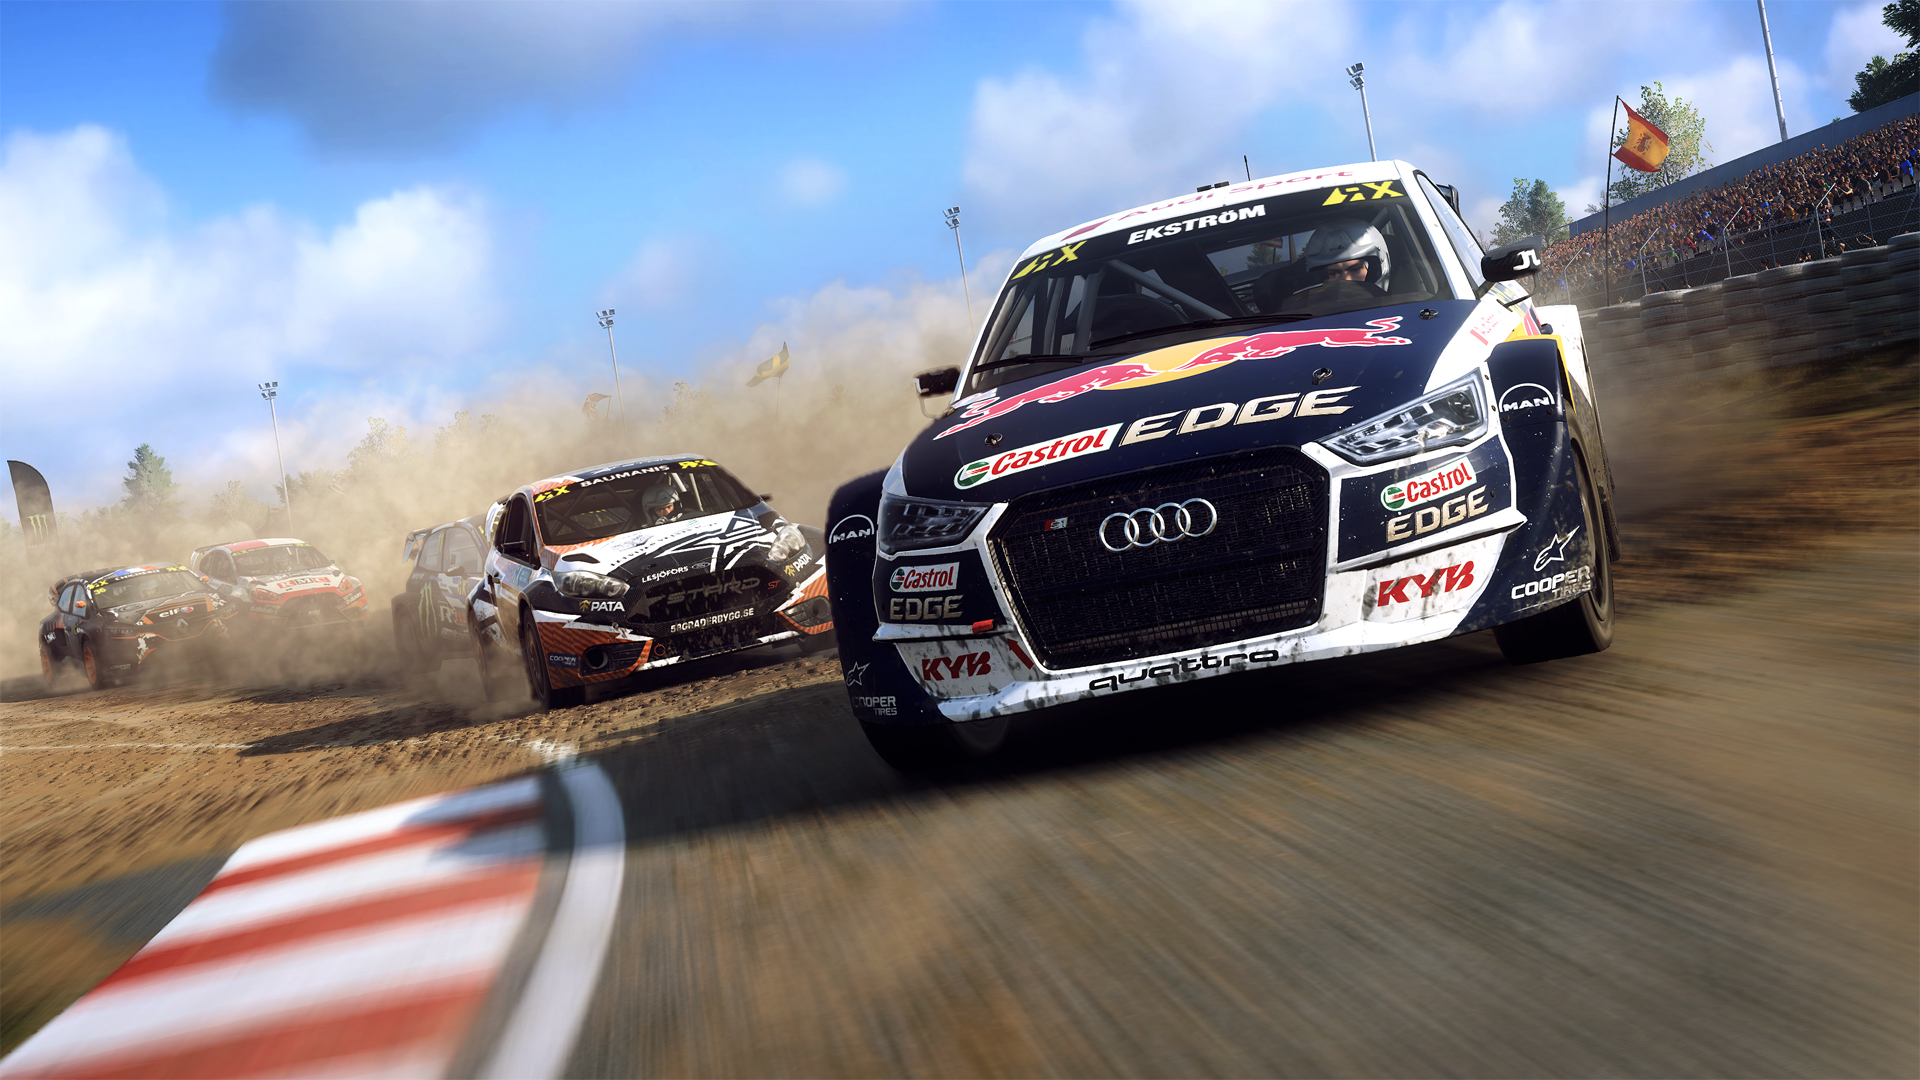 Media asset in full size related to 3dfxzone.it news item entitled as follows: Codemasters pubblica il trailer Rally Through the Ages di DiRT Rally 2.0   Image Name: news29100_DiRT-Rally-2_3.jpg